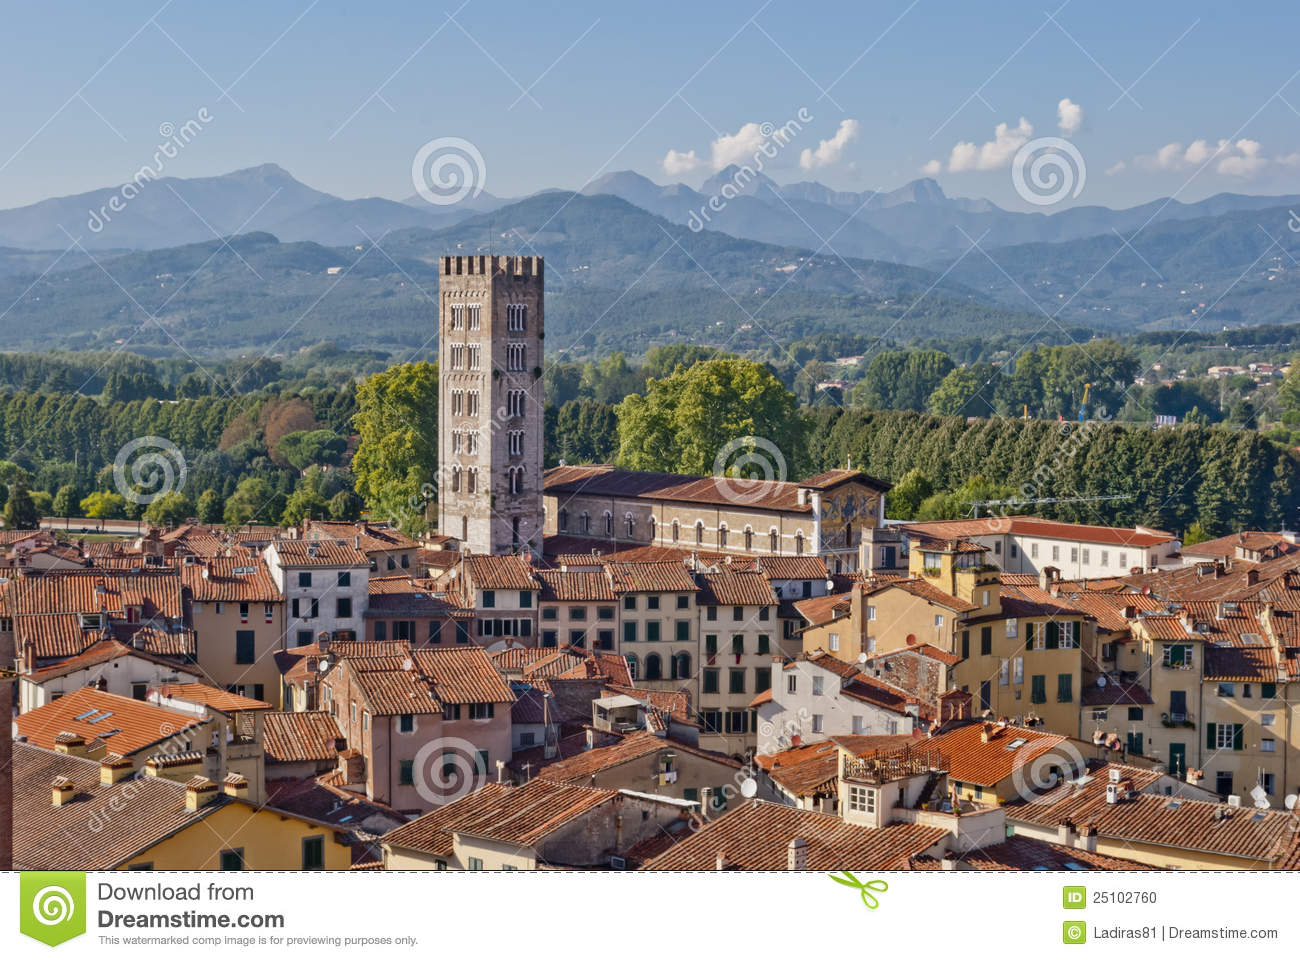 Lucca, Italy Stock Photo - Image: 25102760